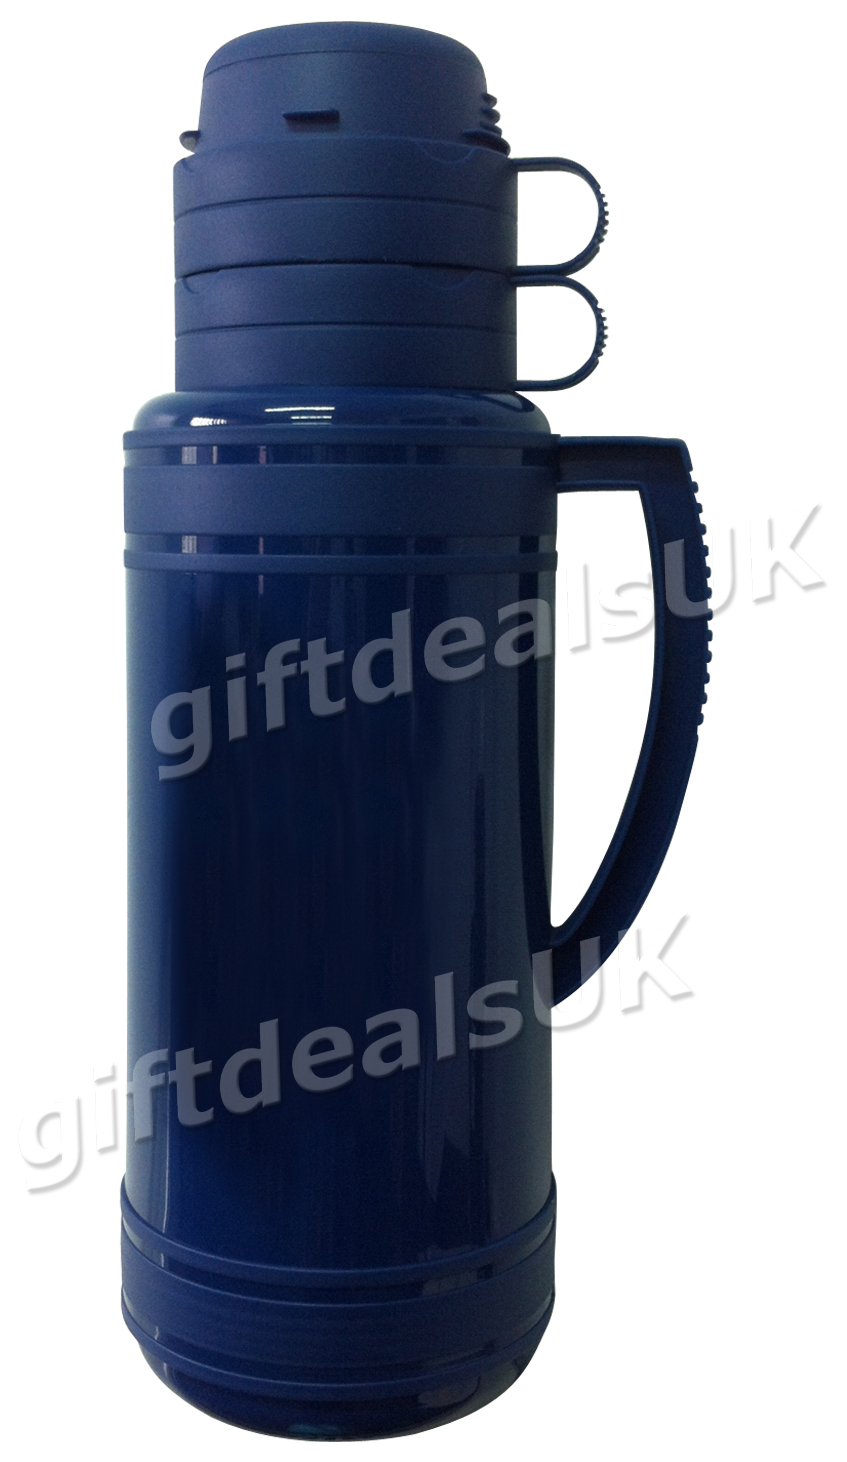 1 8 l in plastica te 39 caffe 39 thermos caldo freddo for Thermos caffe